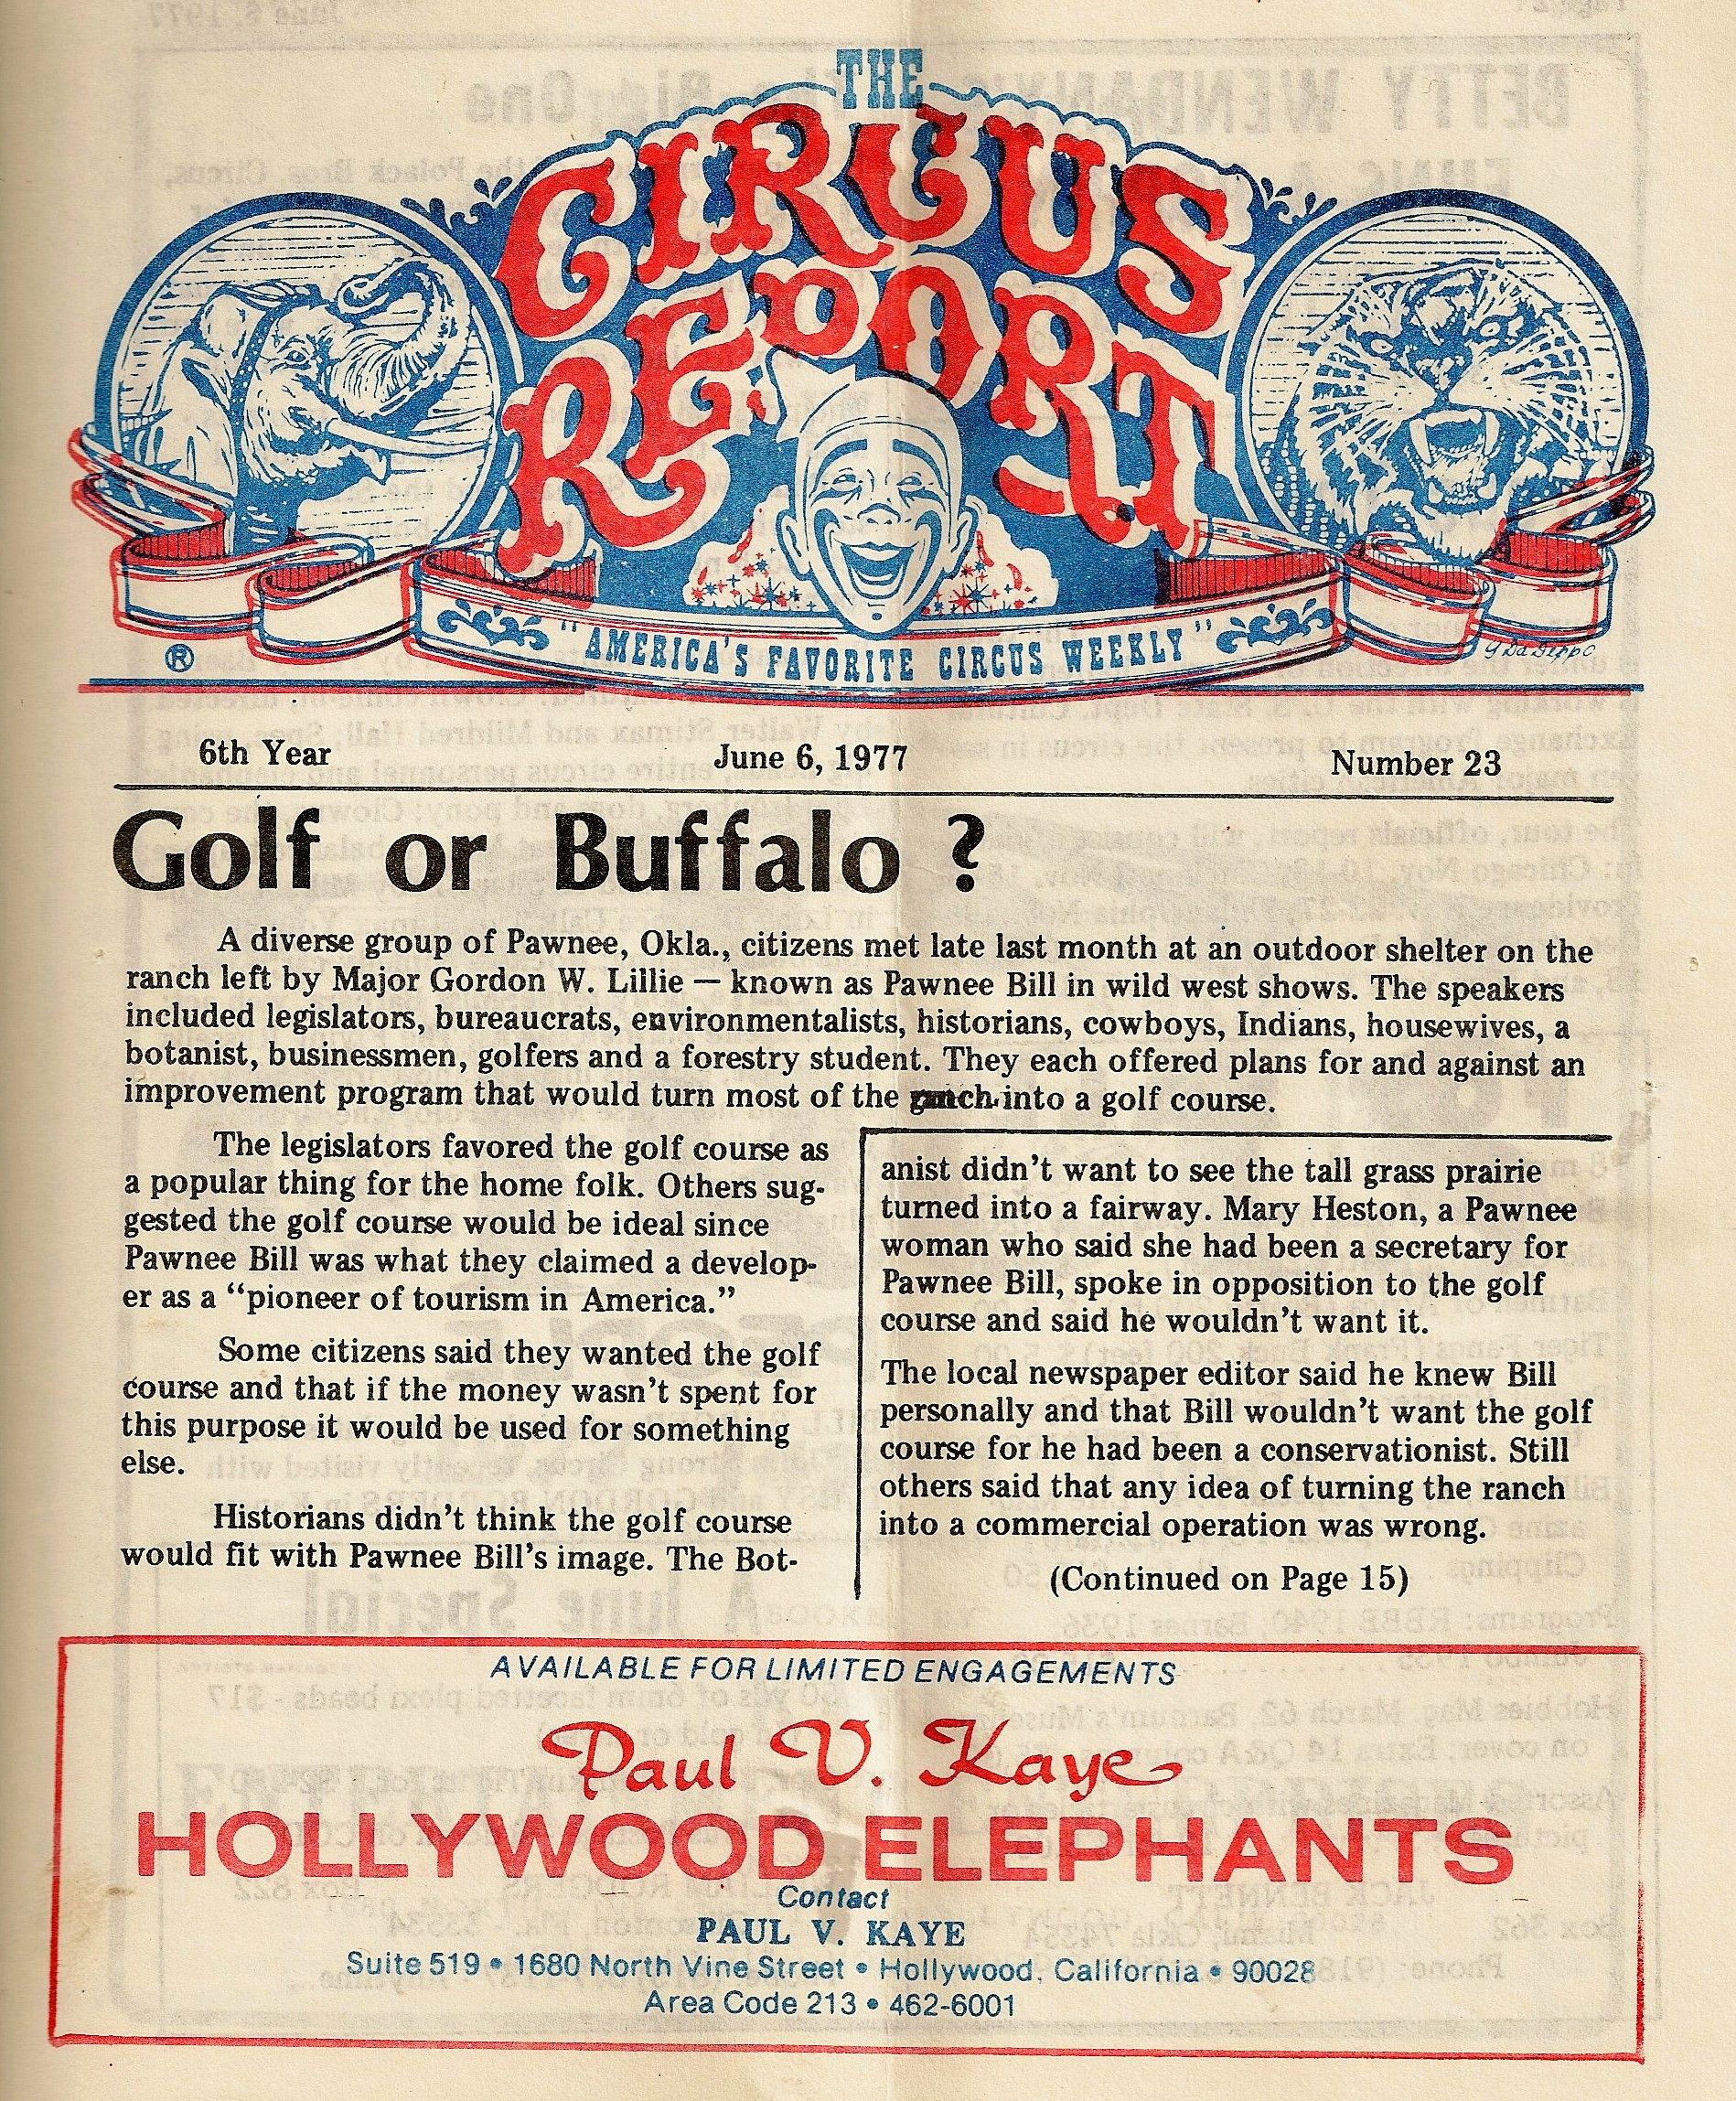 Circus Report Cover 19777